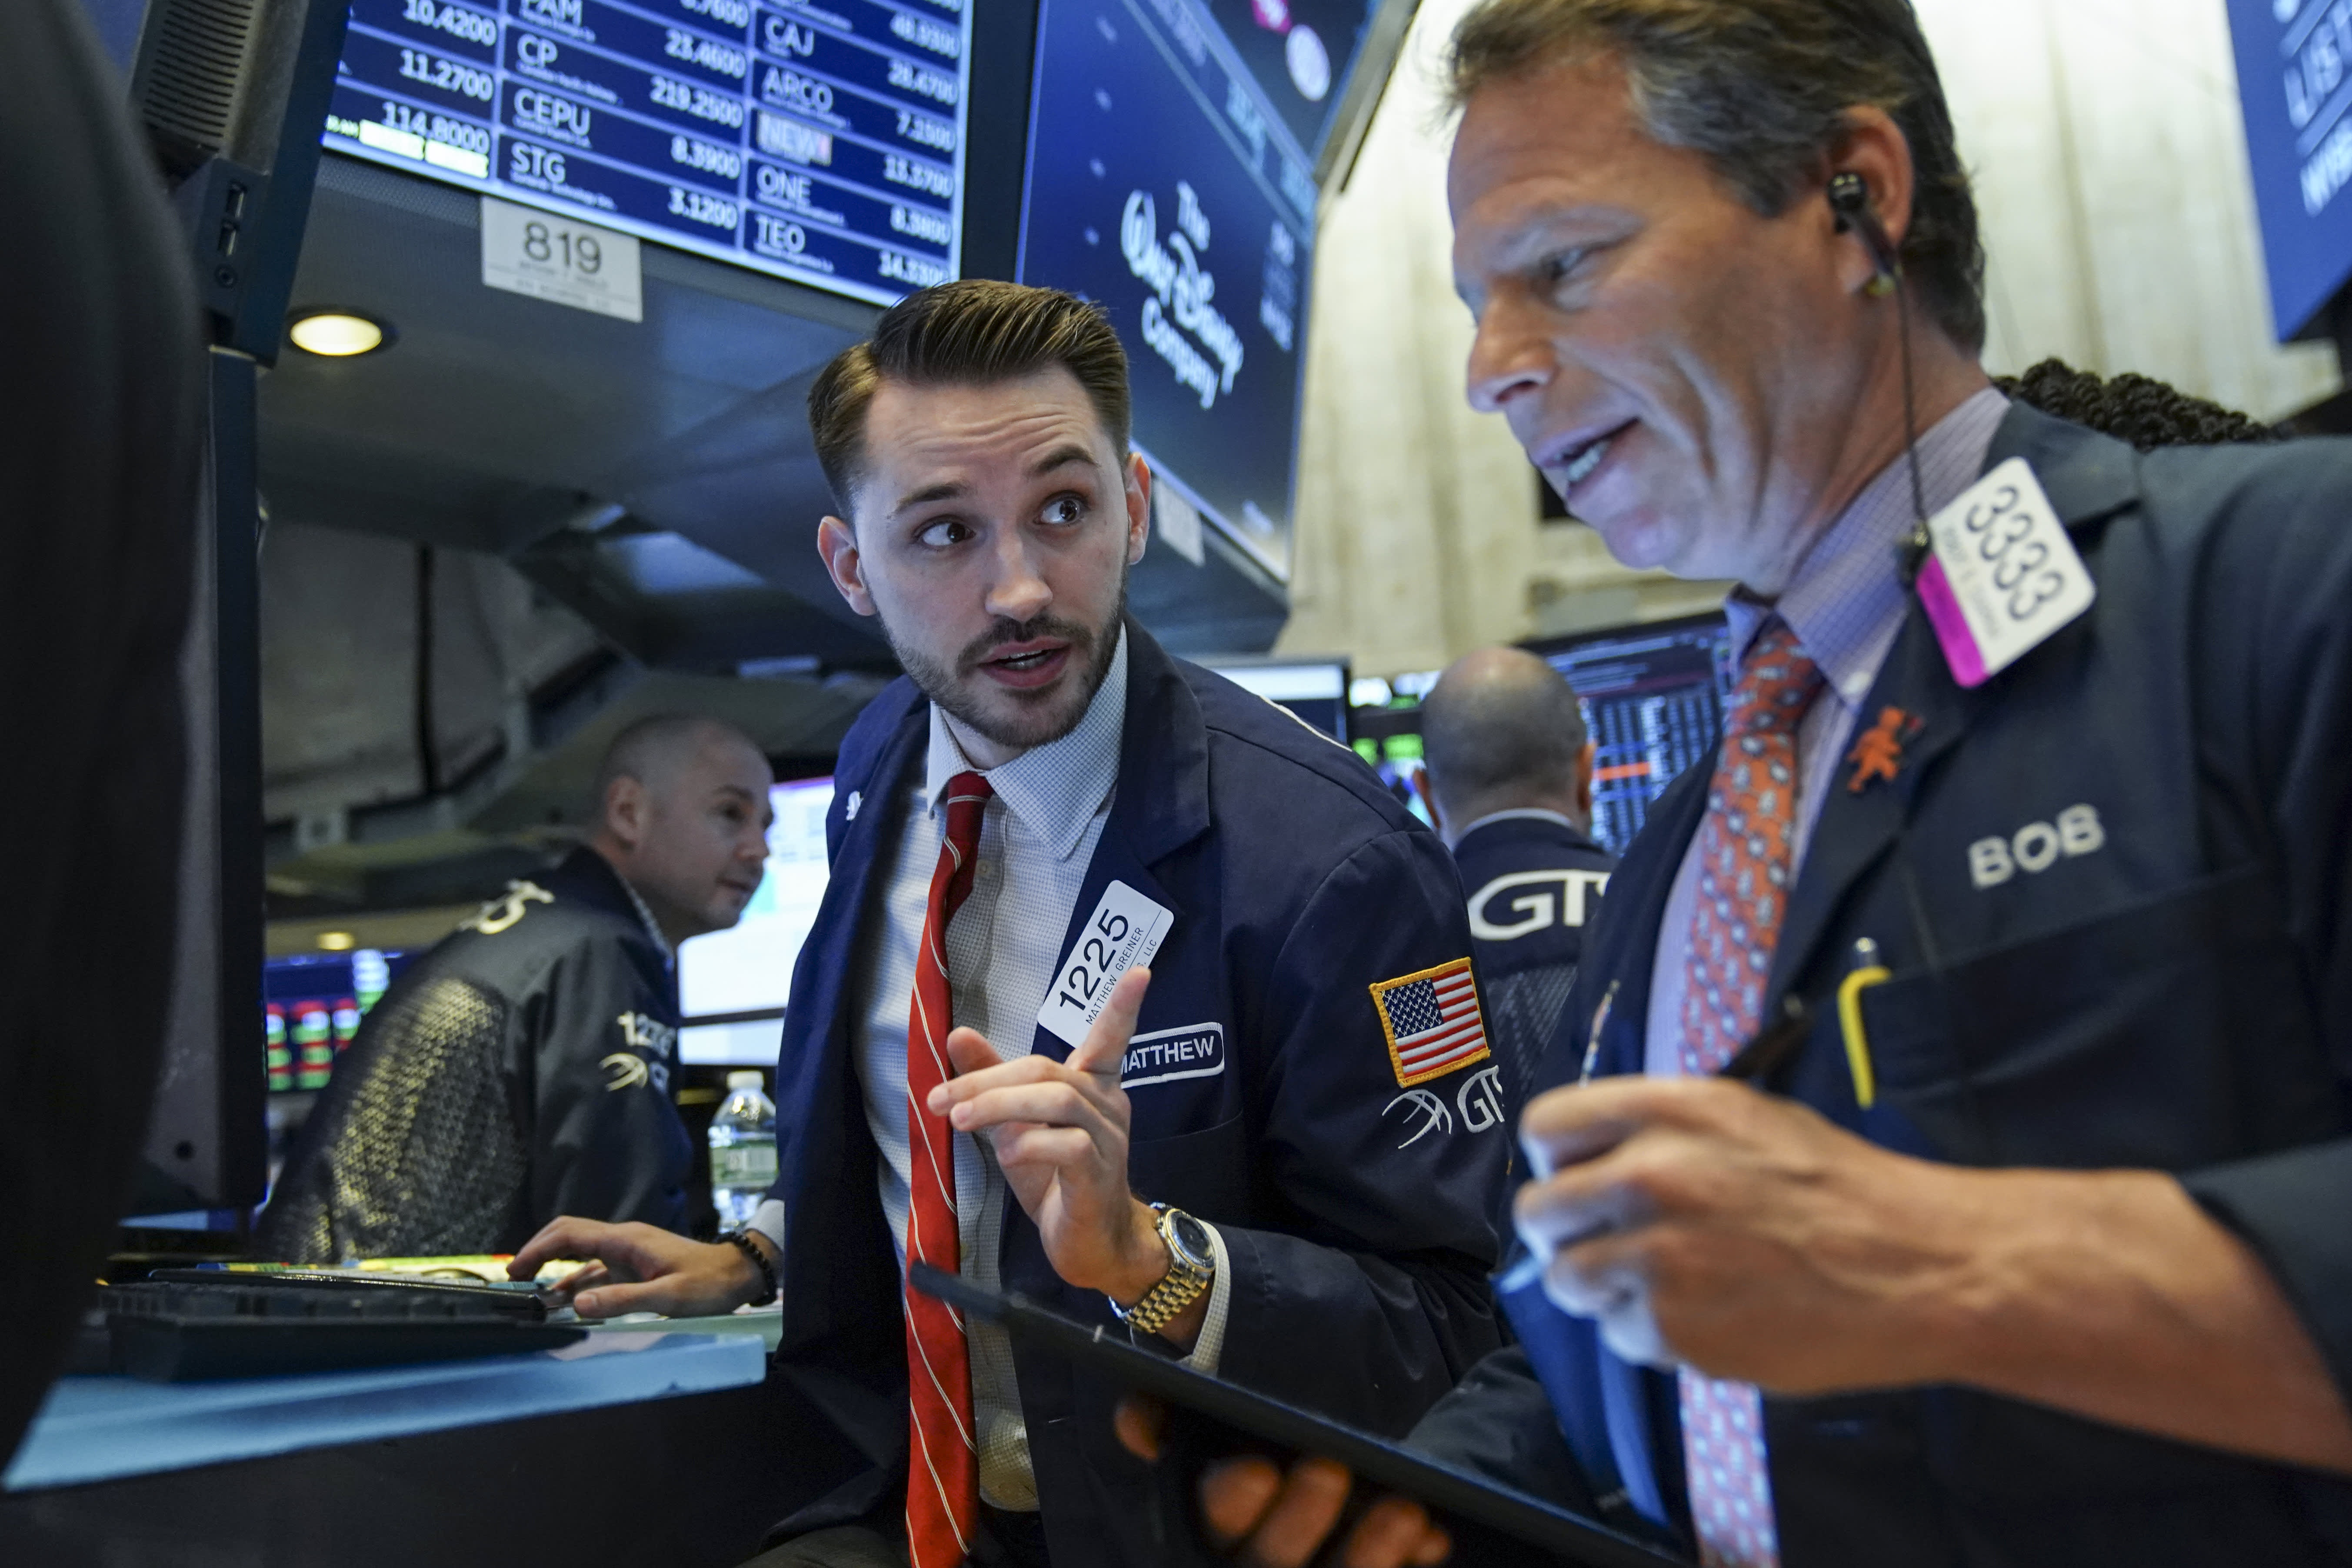 Traders and financial professionals work on the floor of the New York Stock Exchange (NYSE) at the opening bell, April 24, 2019 in New York City.